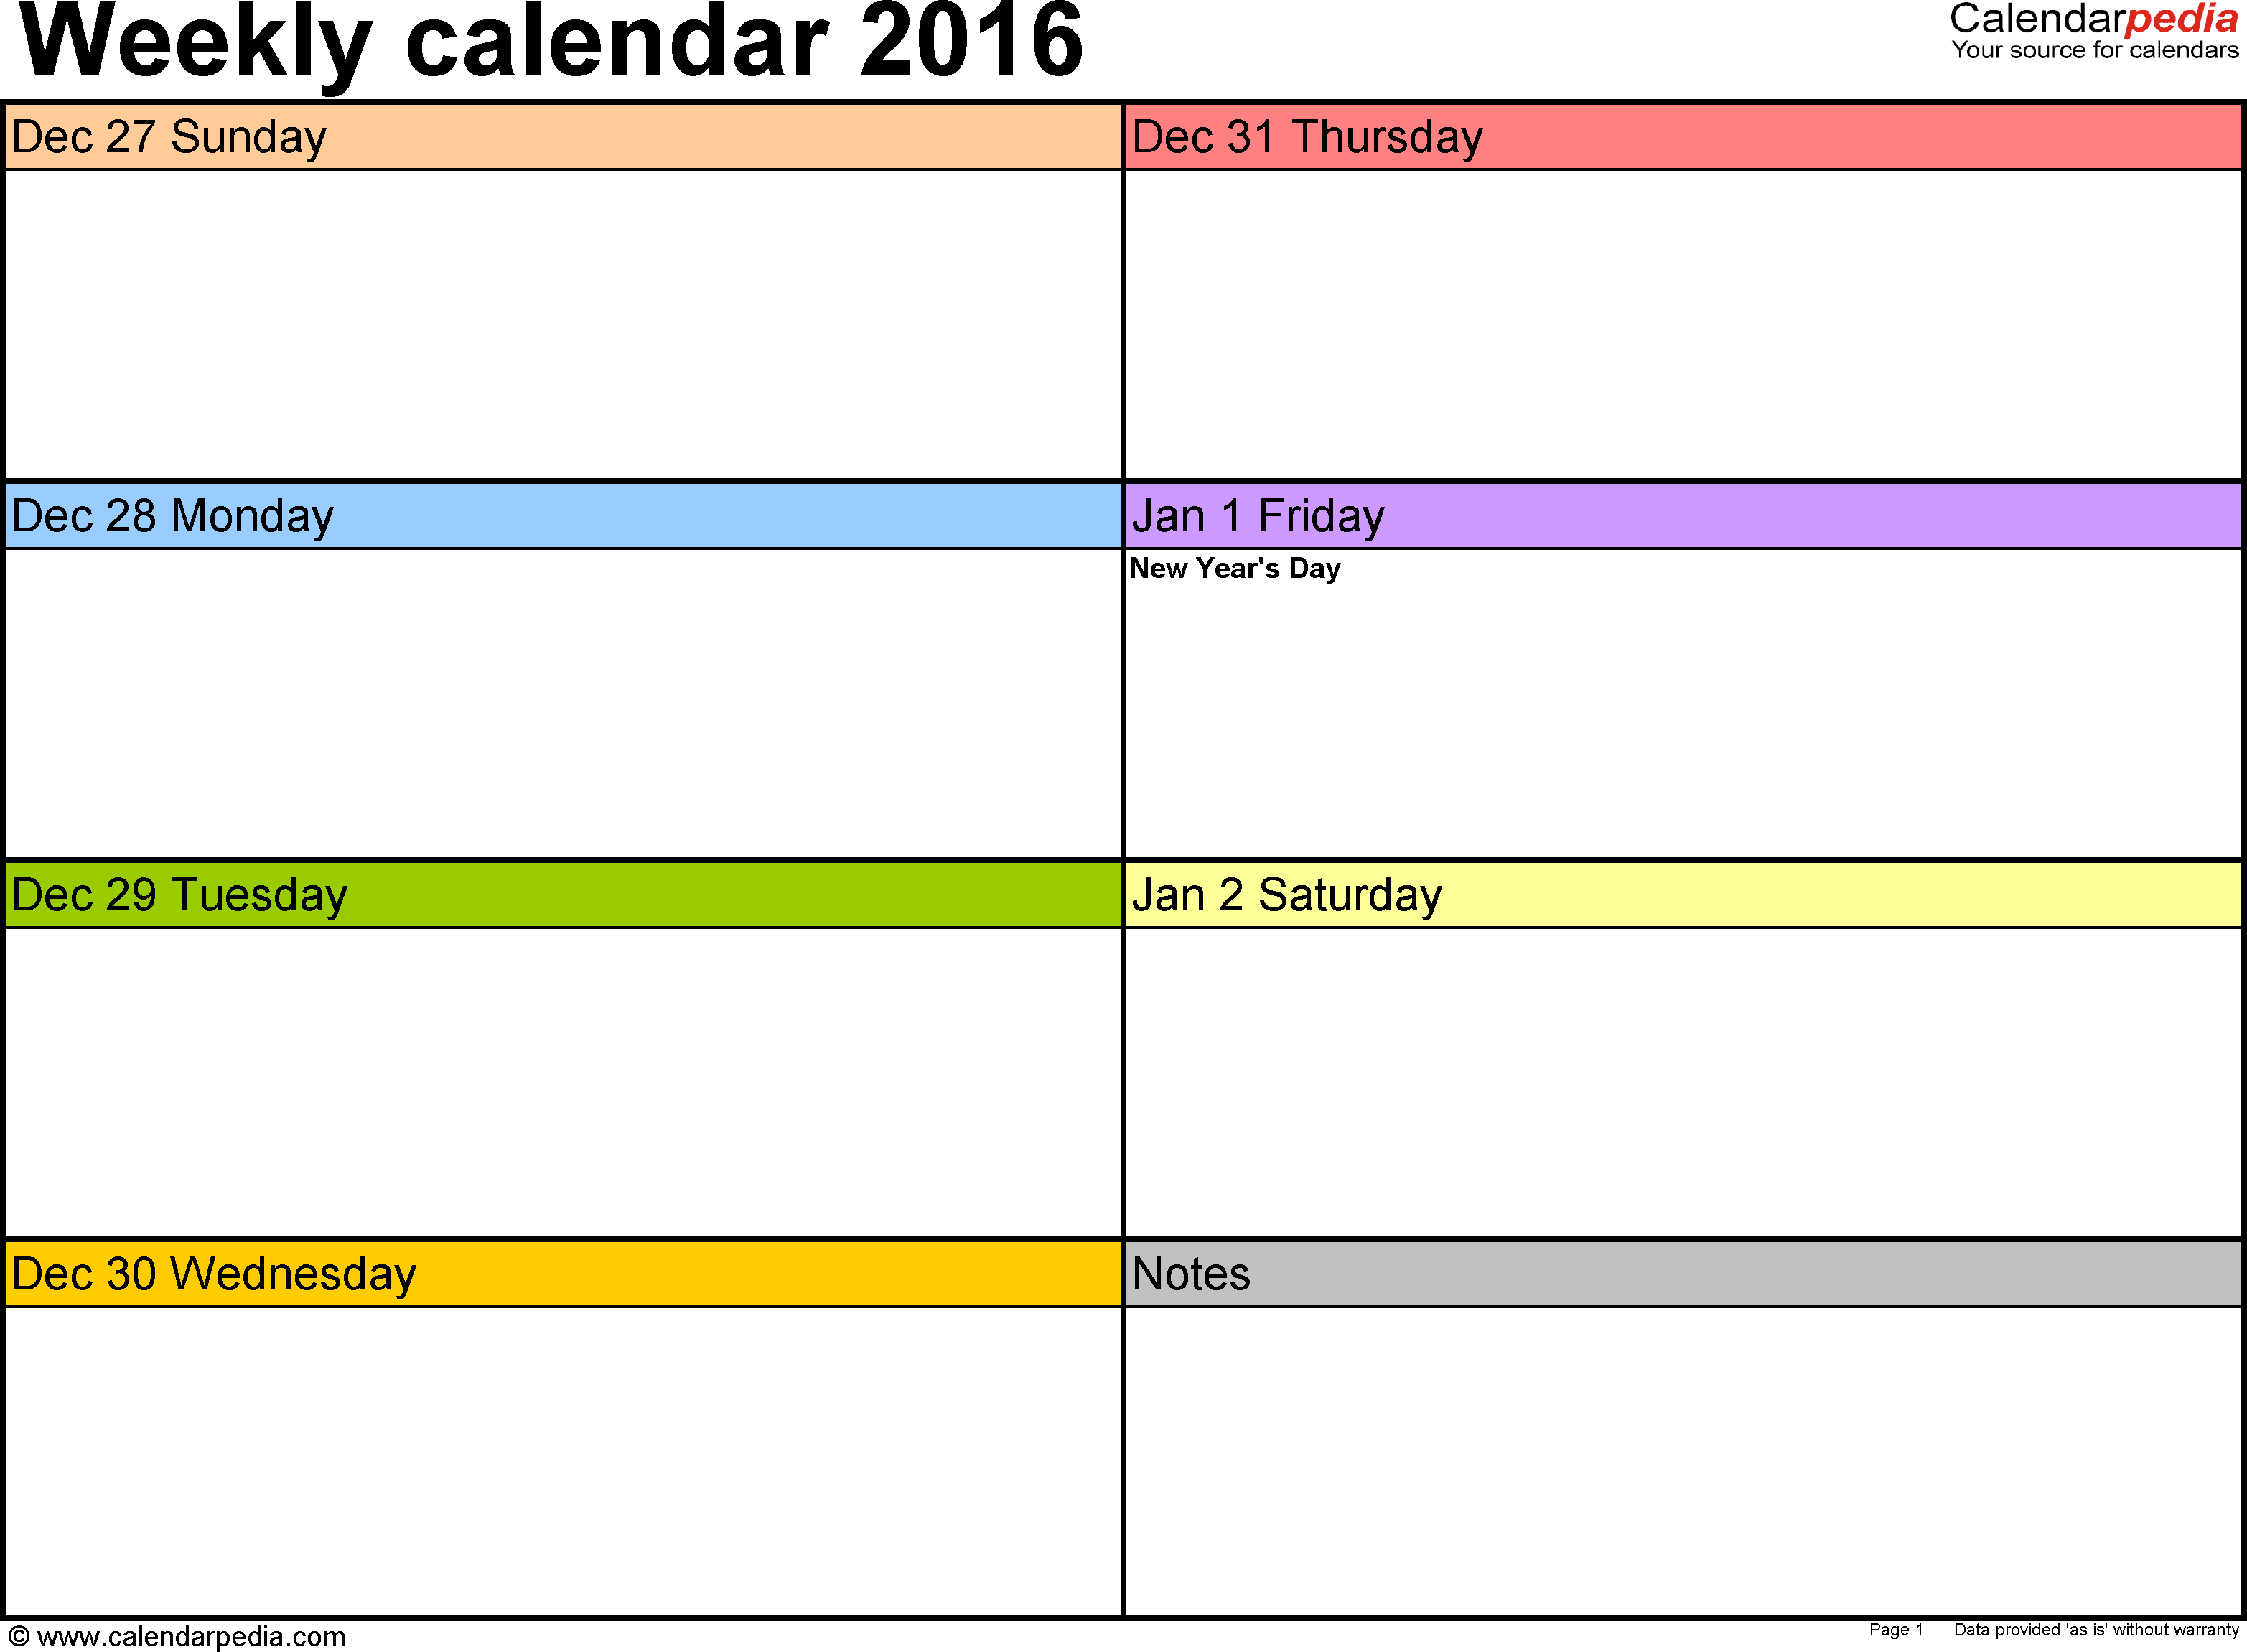 graphic about Blank Weekly Calendar Template called Weekly calendar 2016 for Term - 12 absolutely free printable templates